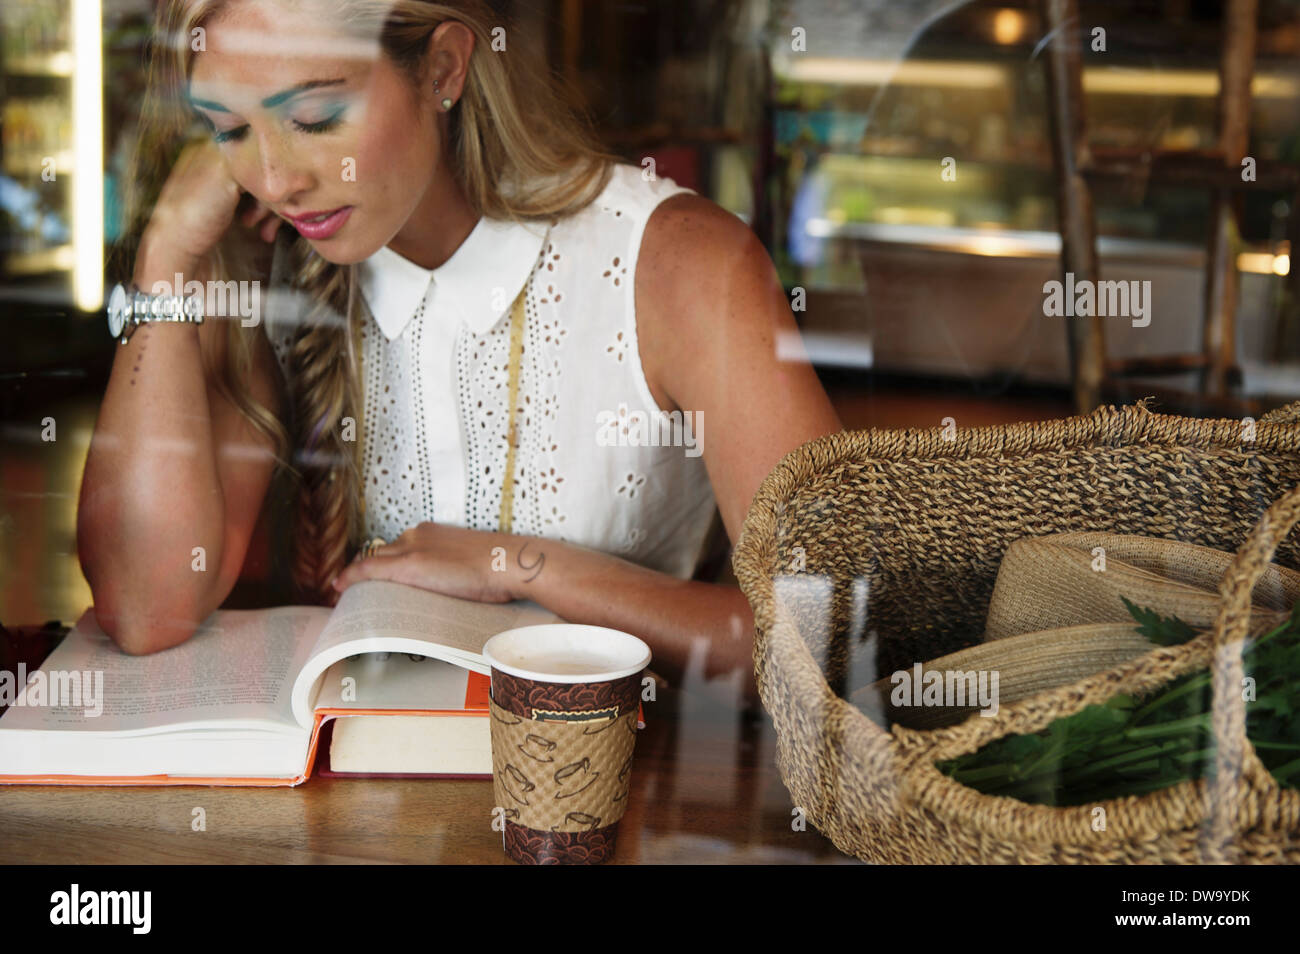 Young woman reading in cafe - Stock Image